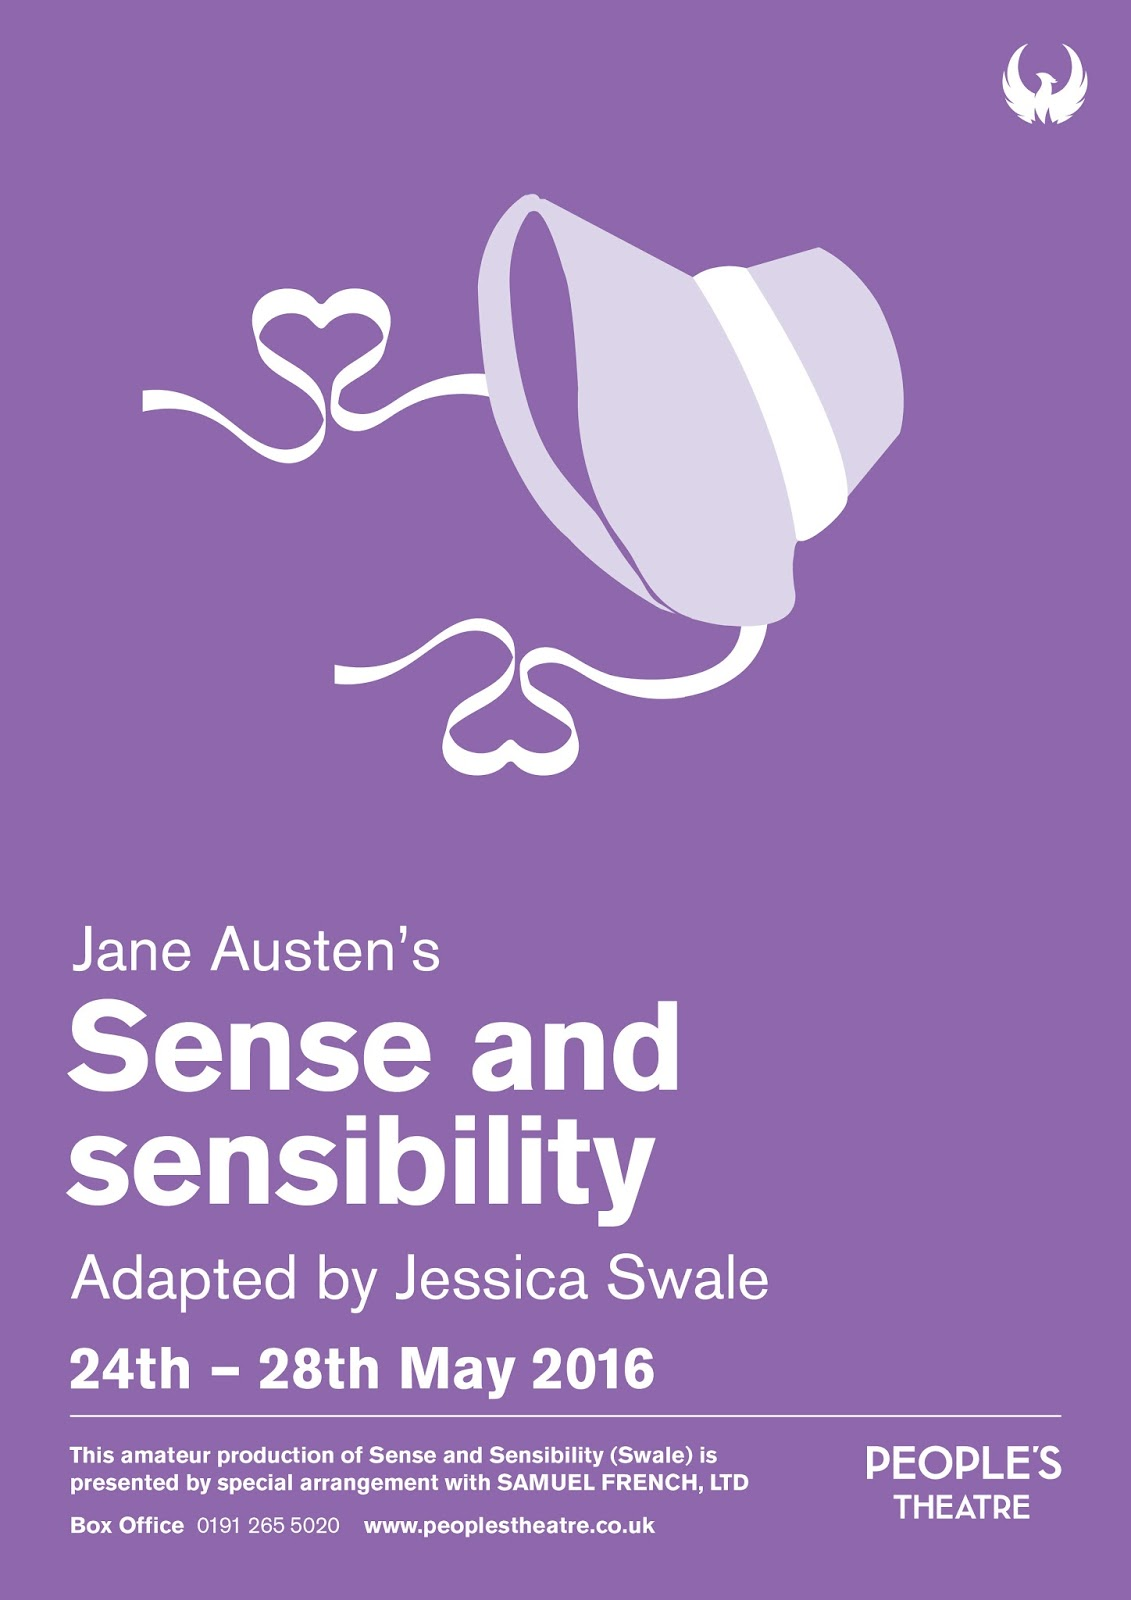 a review of sense and sensibility Review: cape fear regional theatre: 'sense and sensibility' a stylish staging – the fayetteville observer, april 16, 2018 cfrt presents fresh adaptation of.